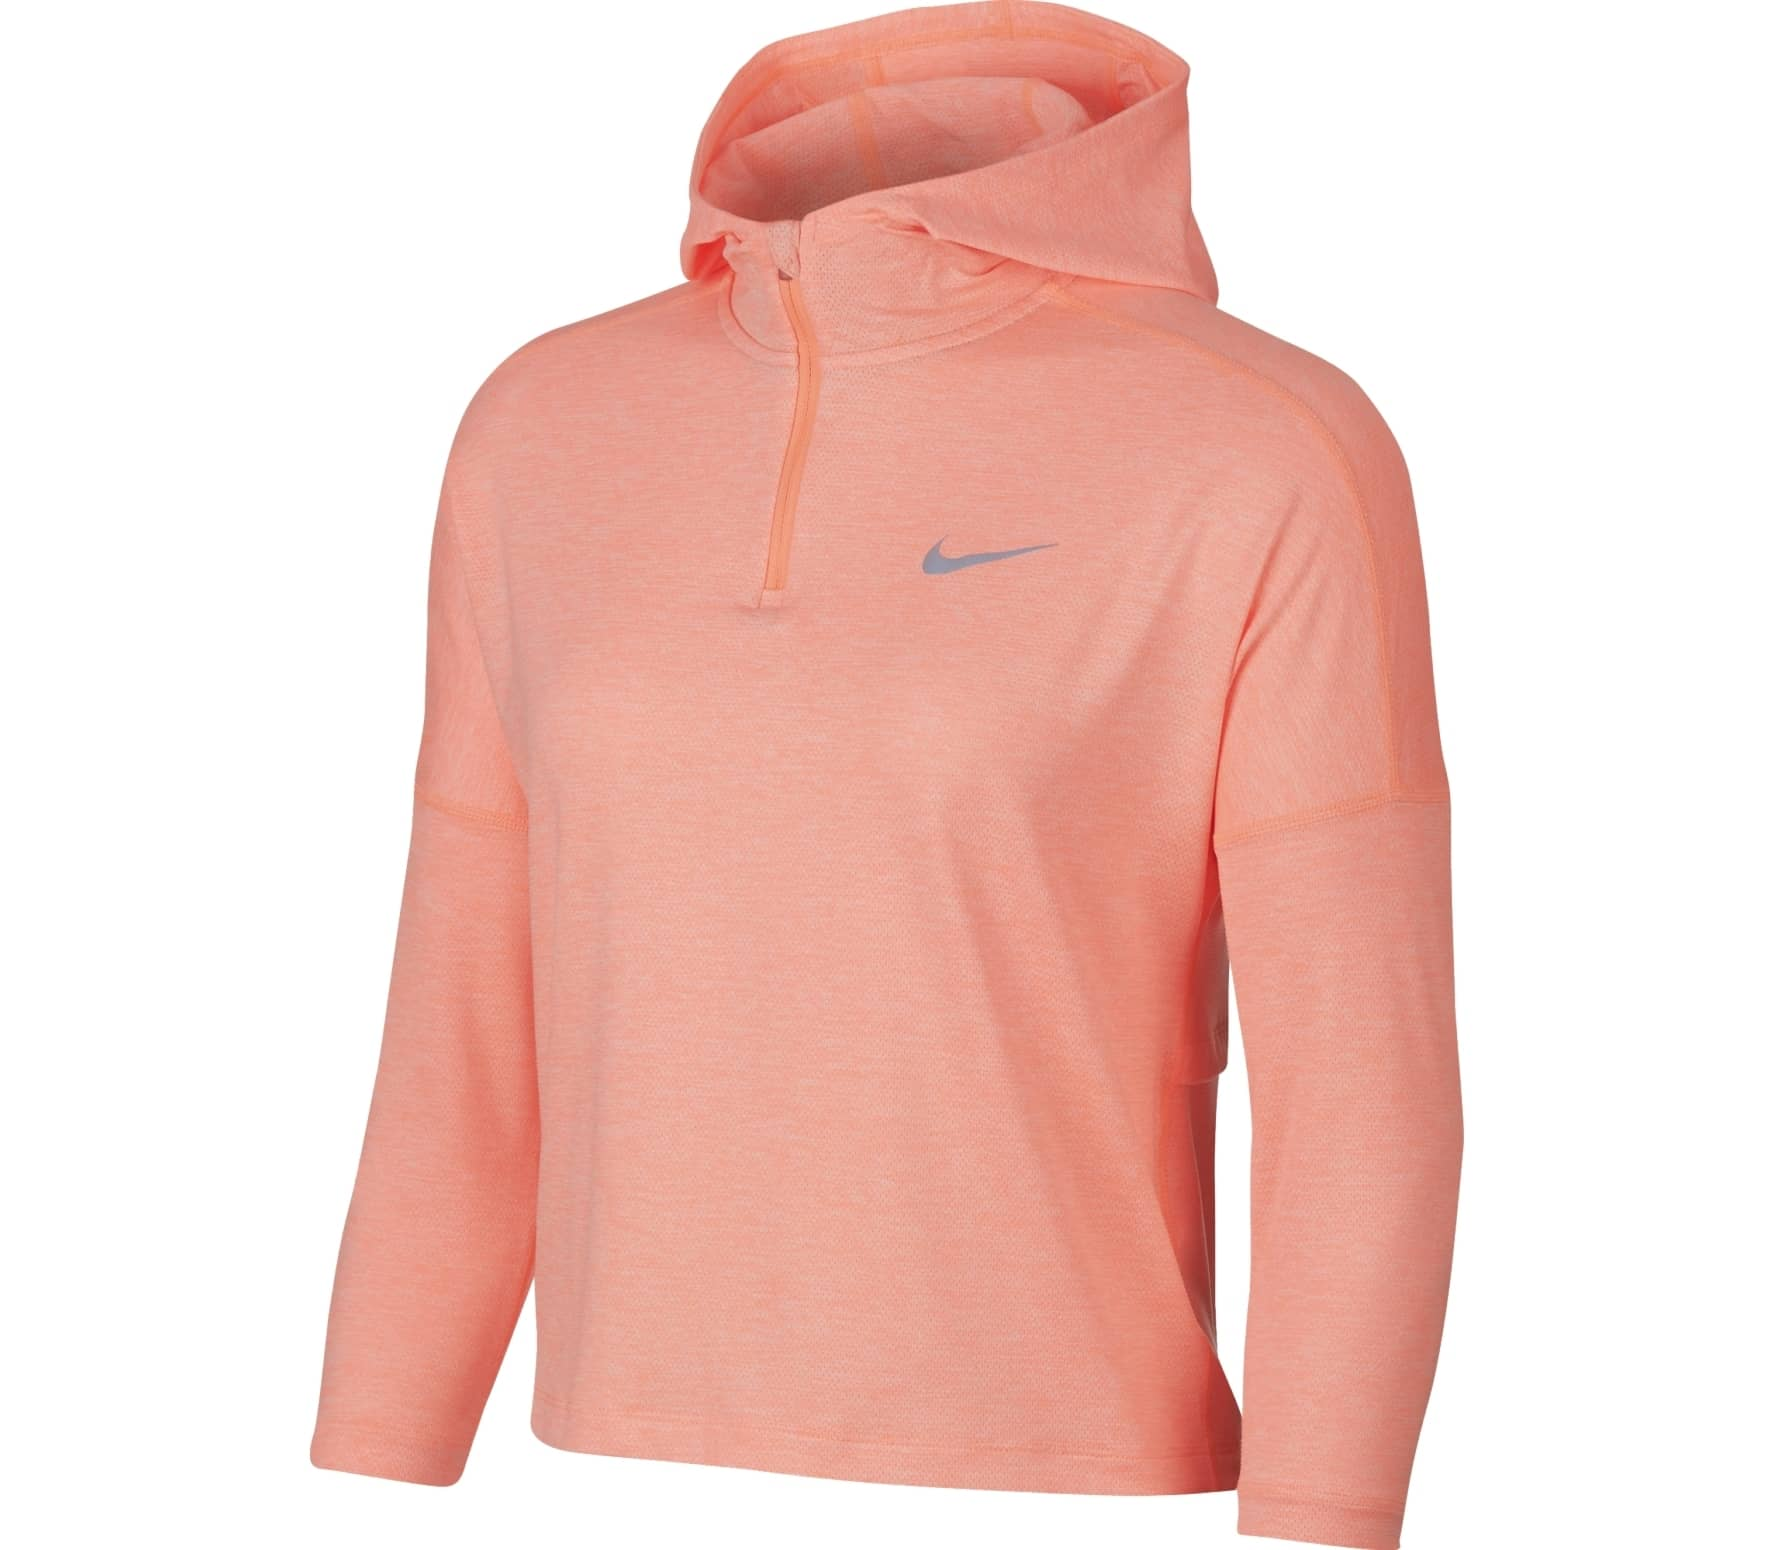 Nike - Dry Element women's running jacket (orange) - XS thumbnail